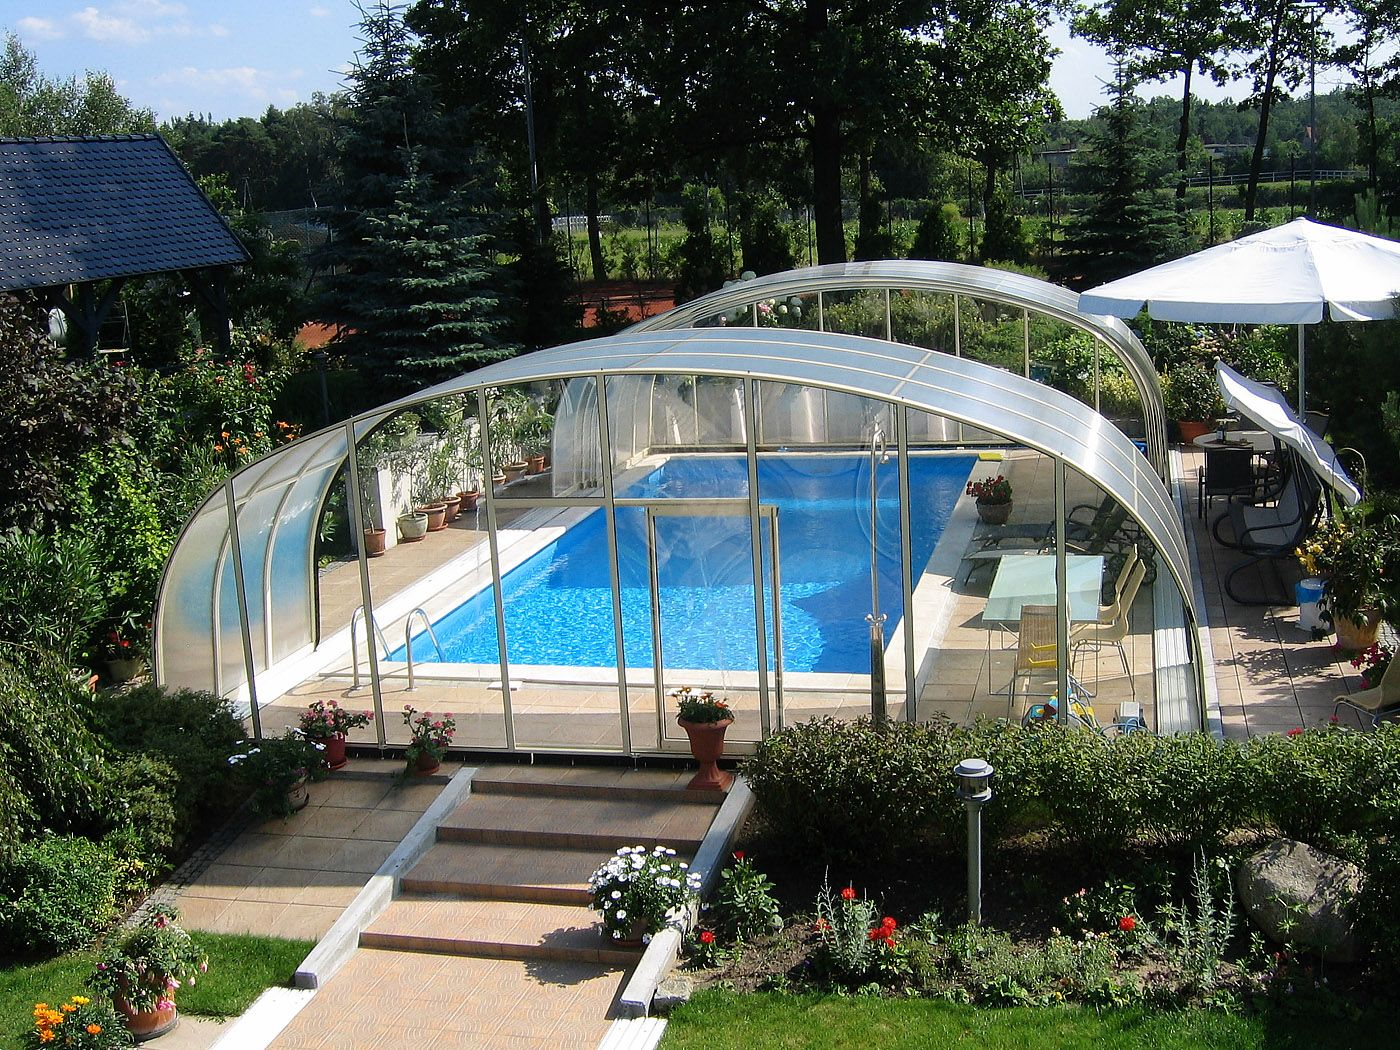 Retractable Enclosure Way To Use Your Pool All Year Round